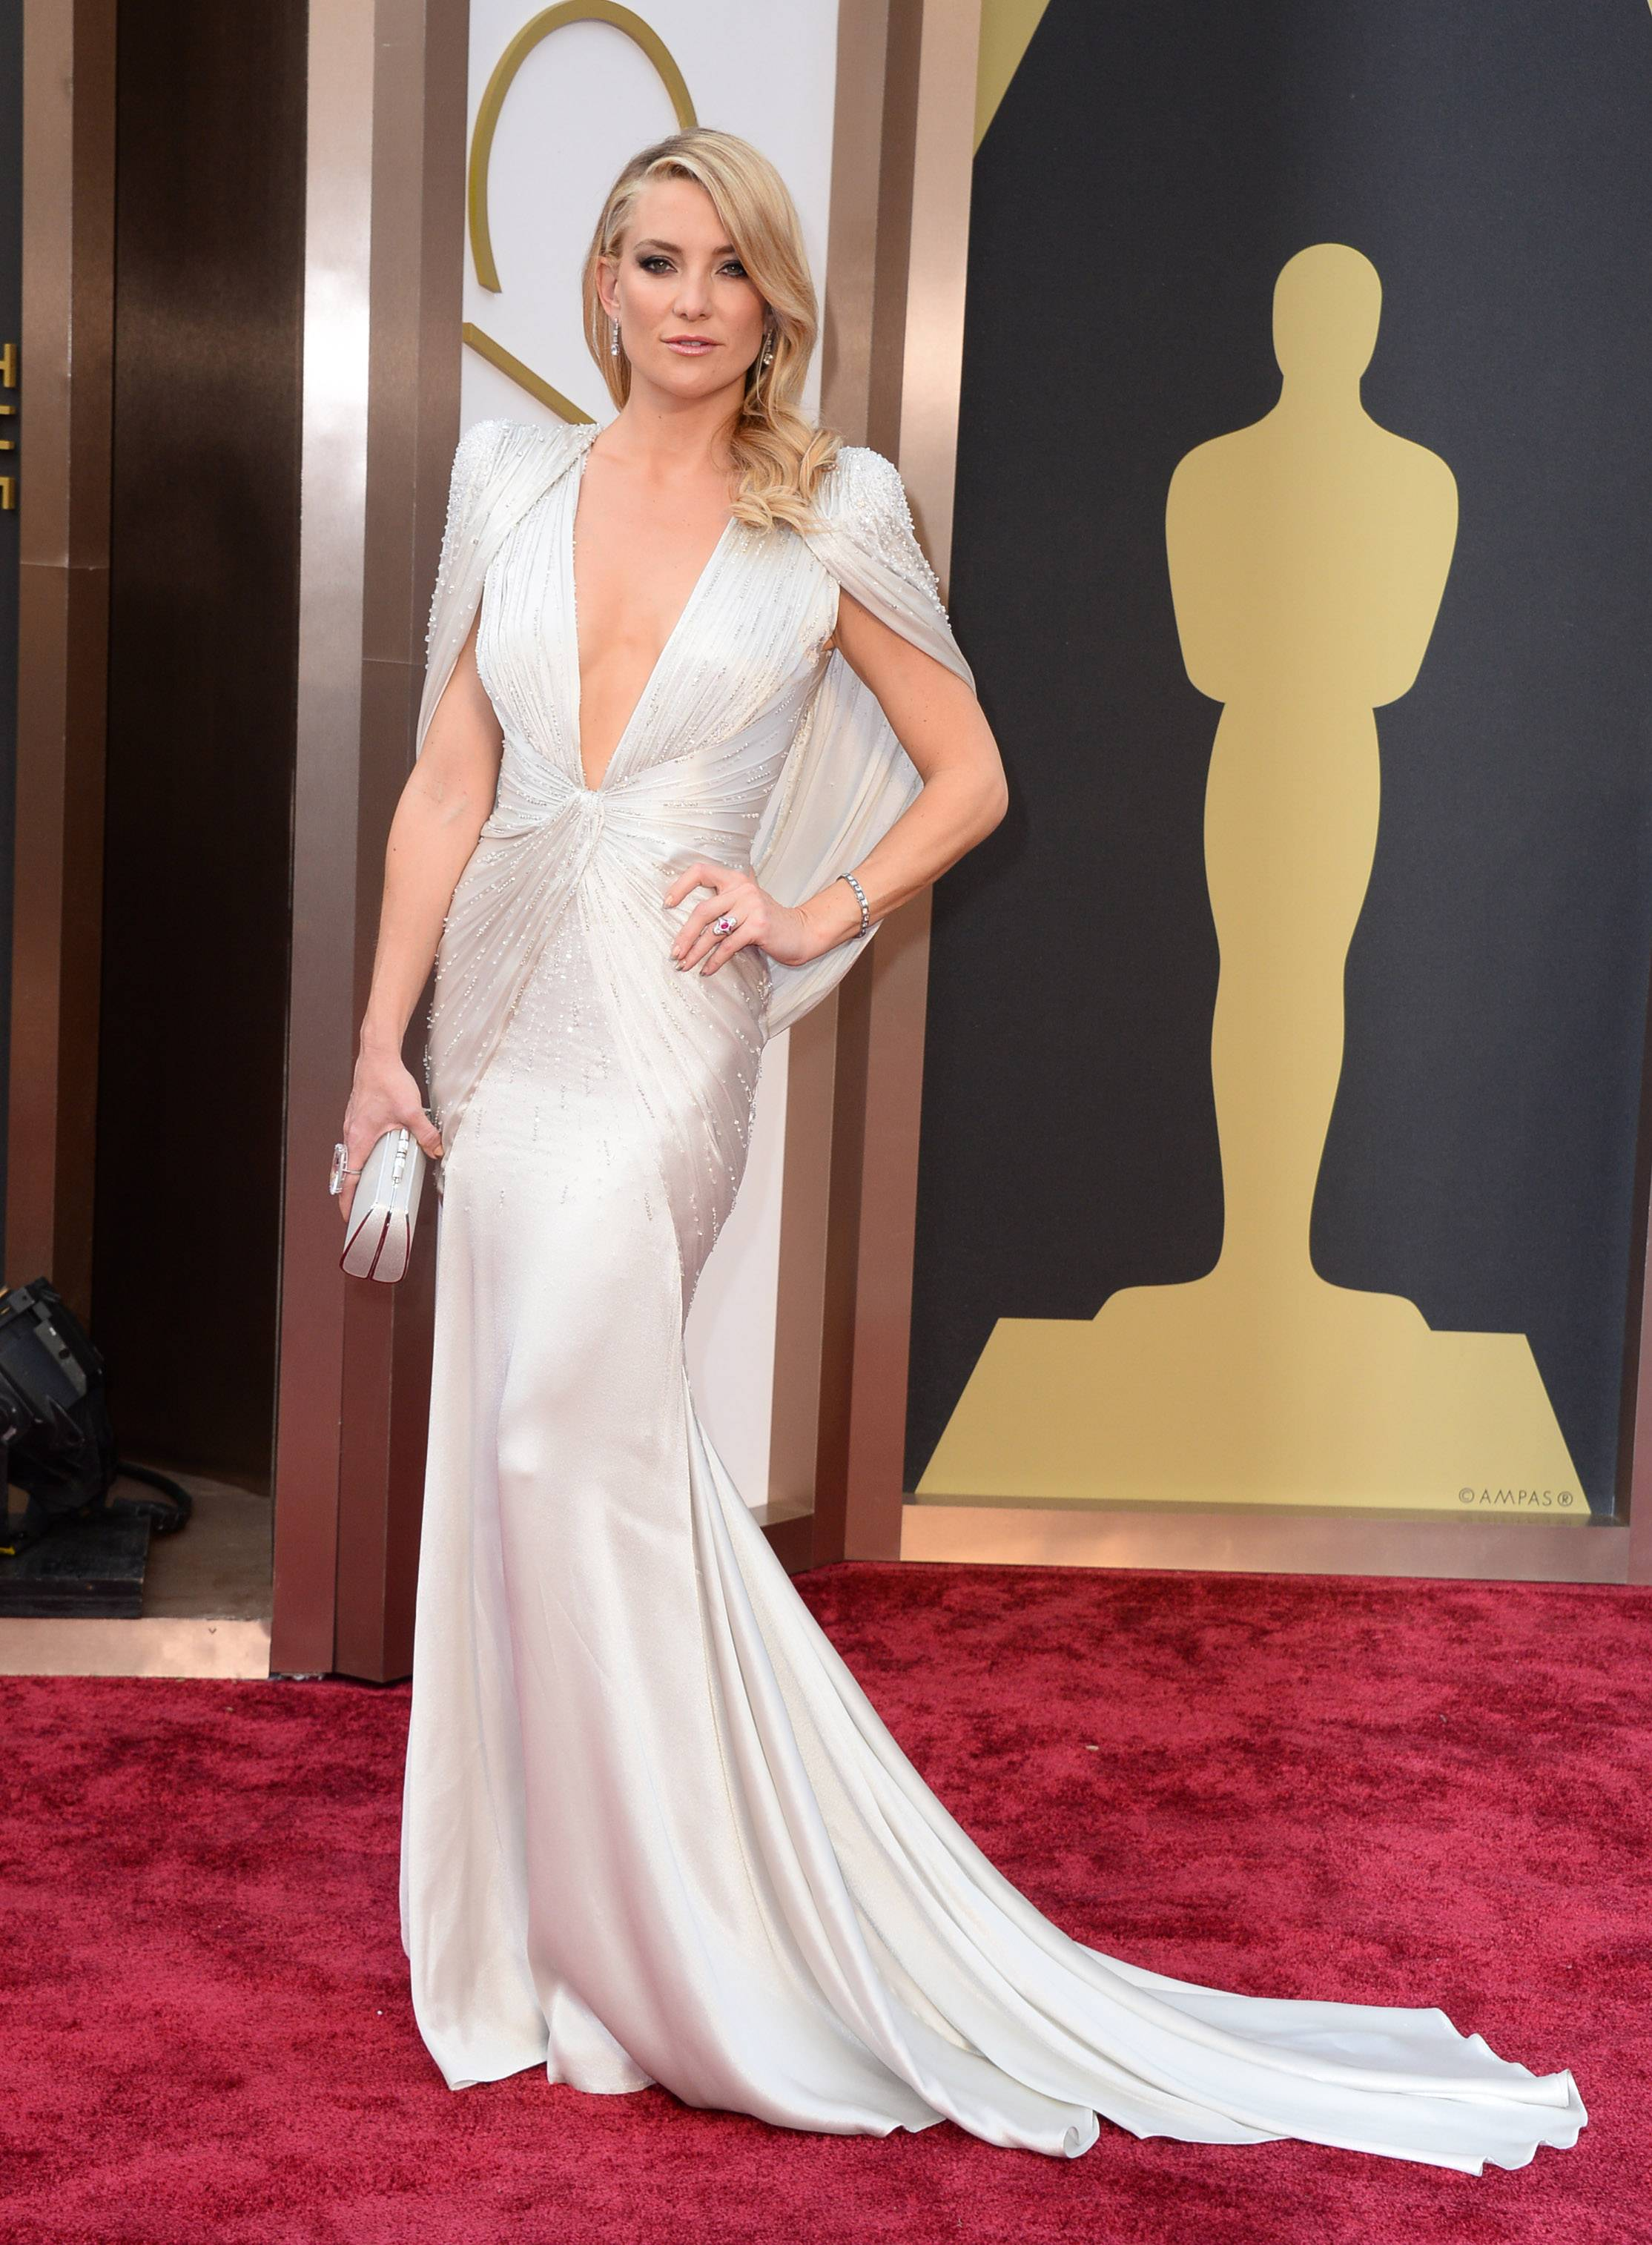 Actress Kate Hudson goes for a little old school Hollywood glamour Sunday at the Oscars.